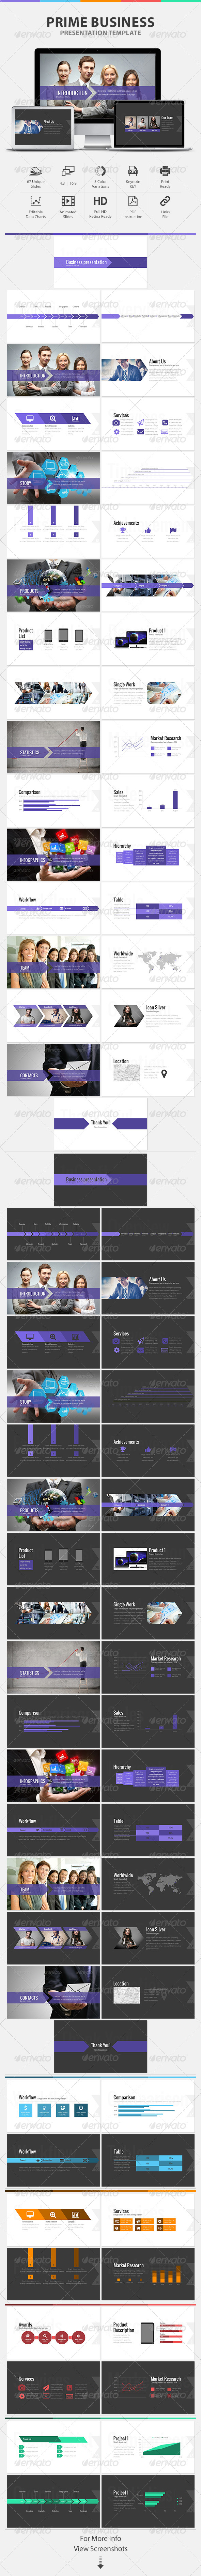 GraphicRiver Prime Business Presentation Keynote Template 7846042